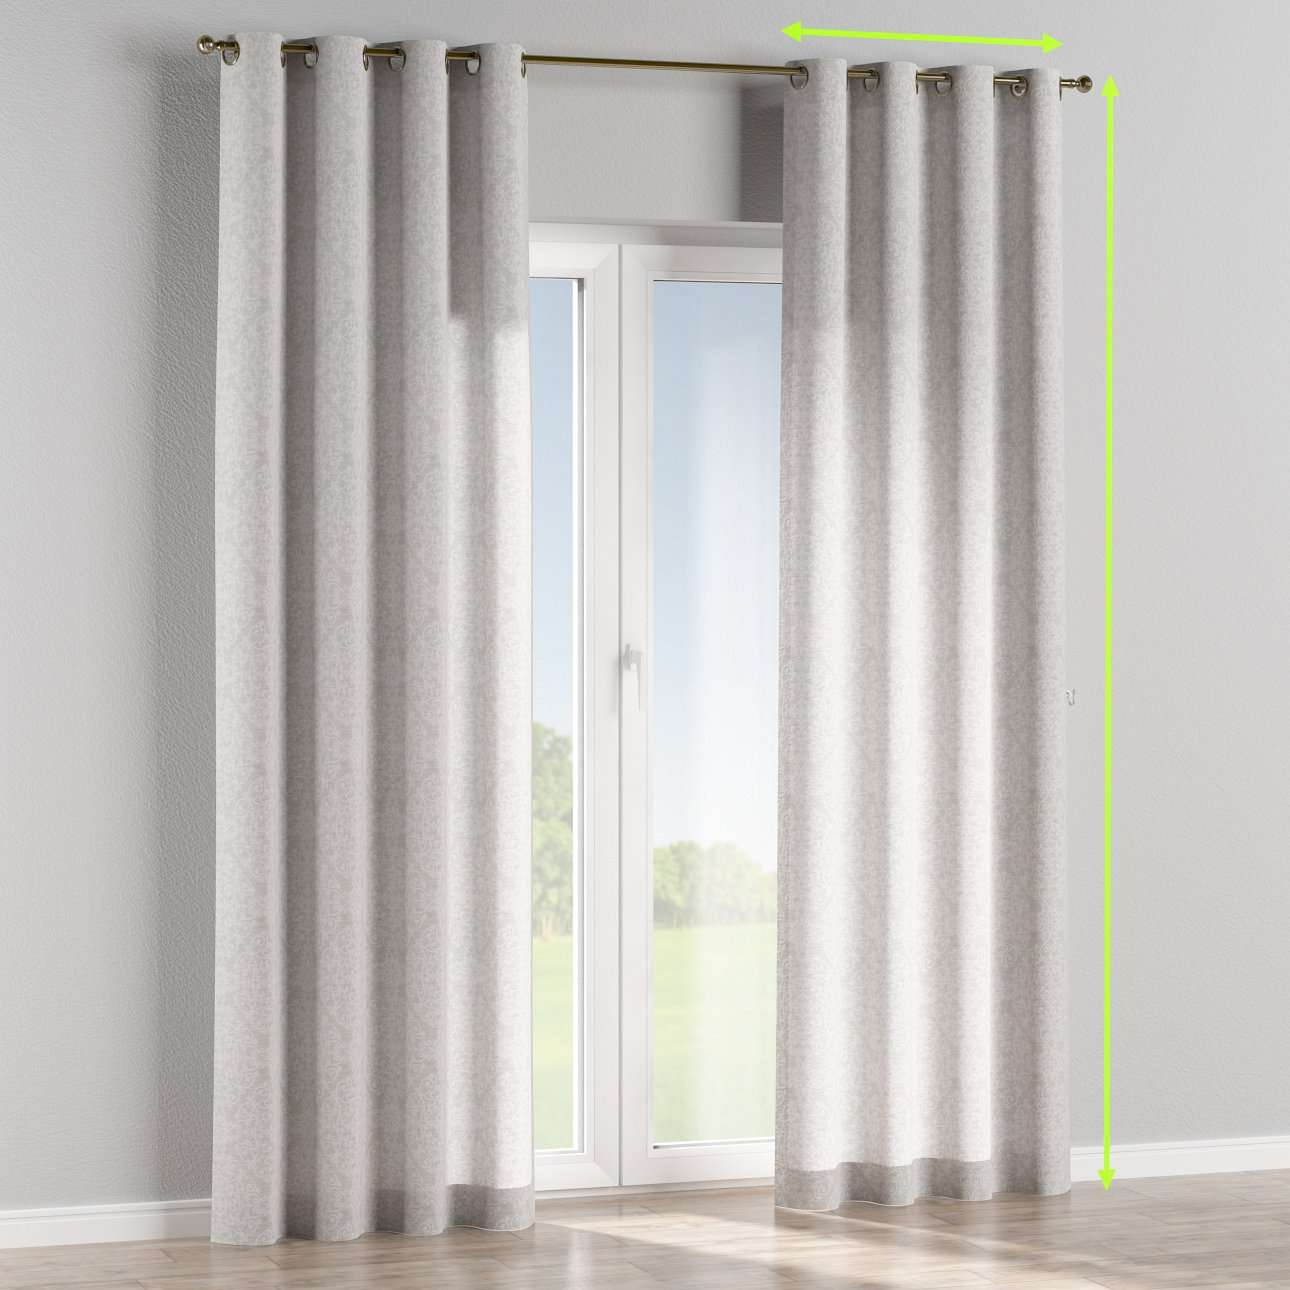 Eyelet lined curtains in collection Venice, fabric: 140-49